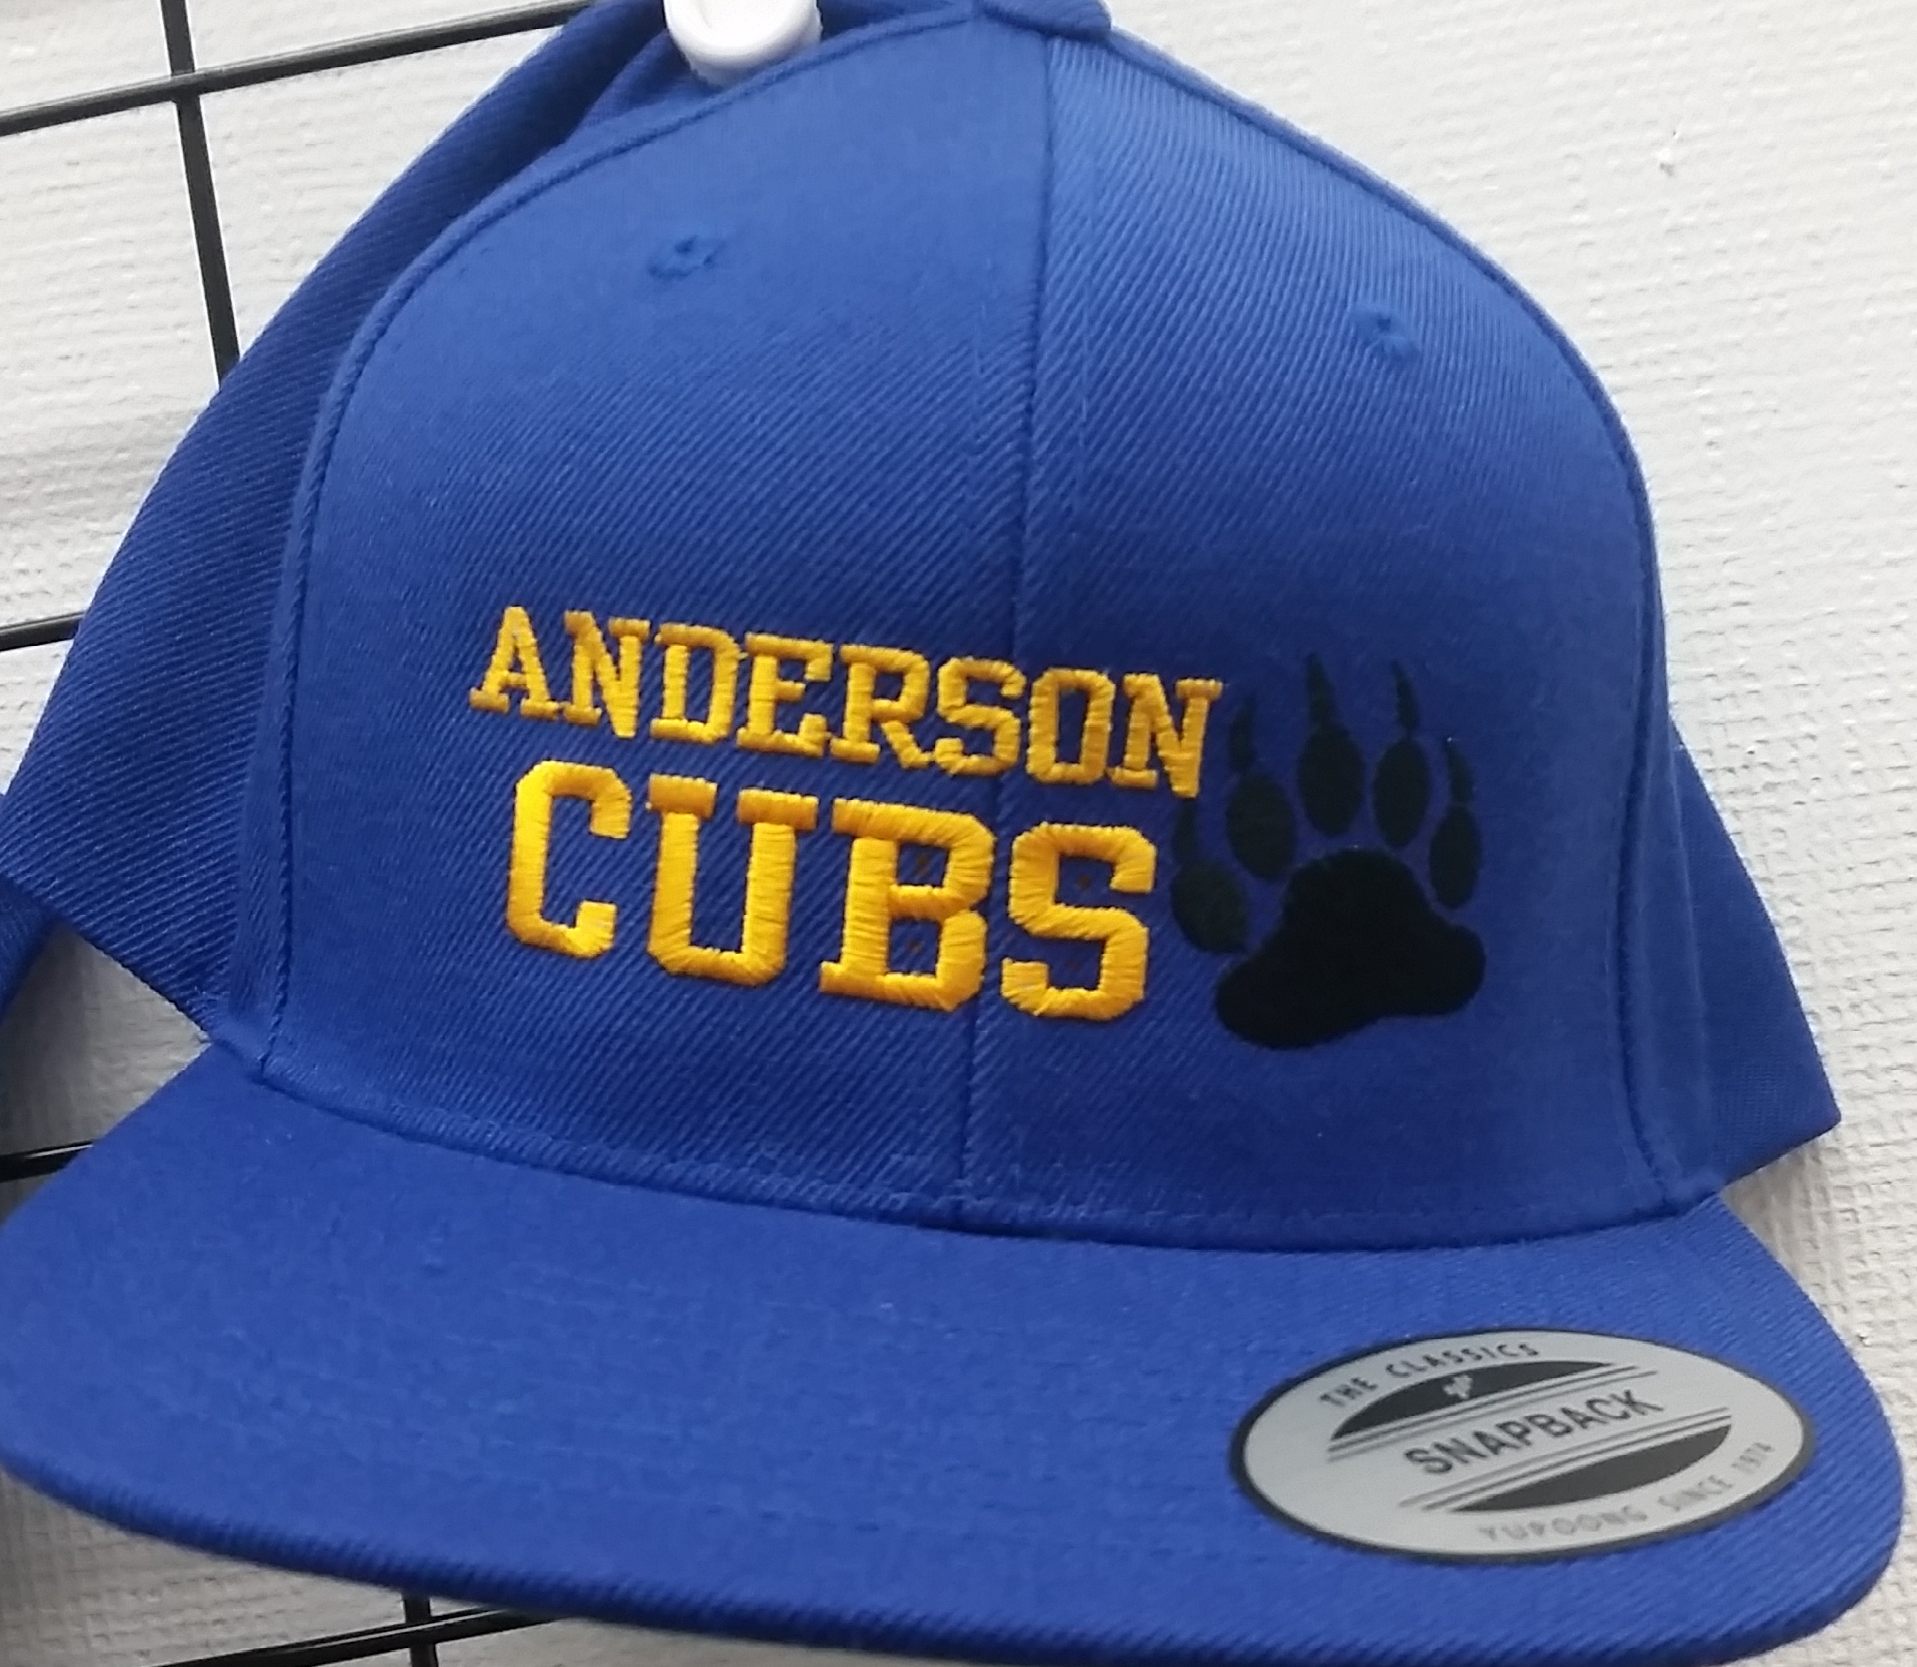 Anderson Cubs Baseball Hat - Blue